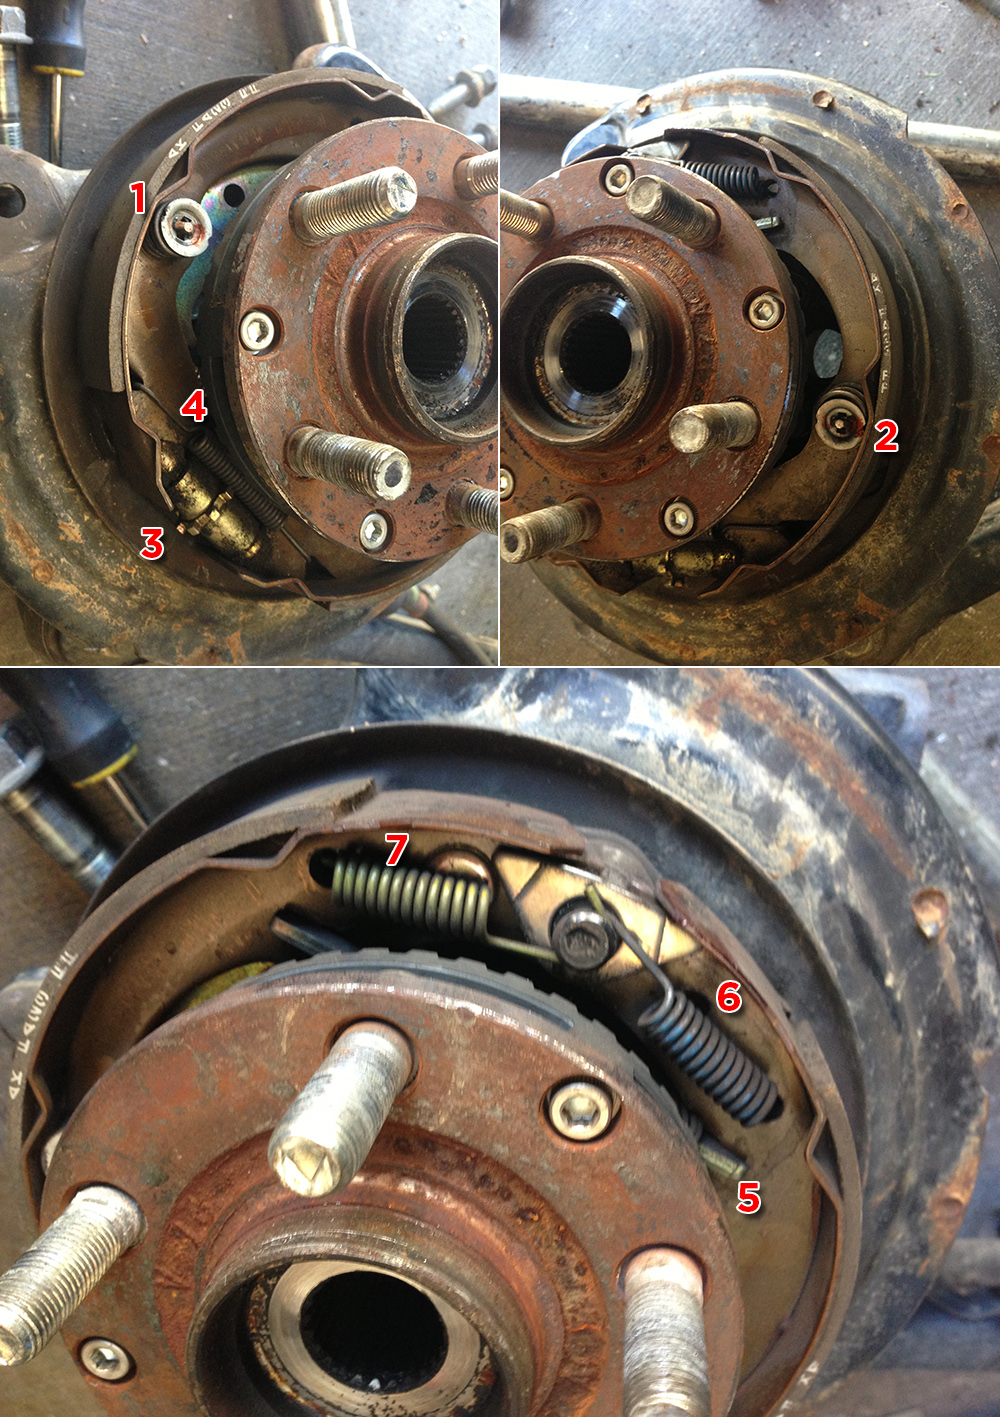 3 16 Brake Line >> DIY: Parking brake assembly rebuild - NASIOC